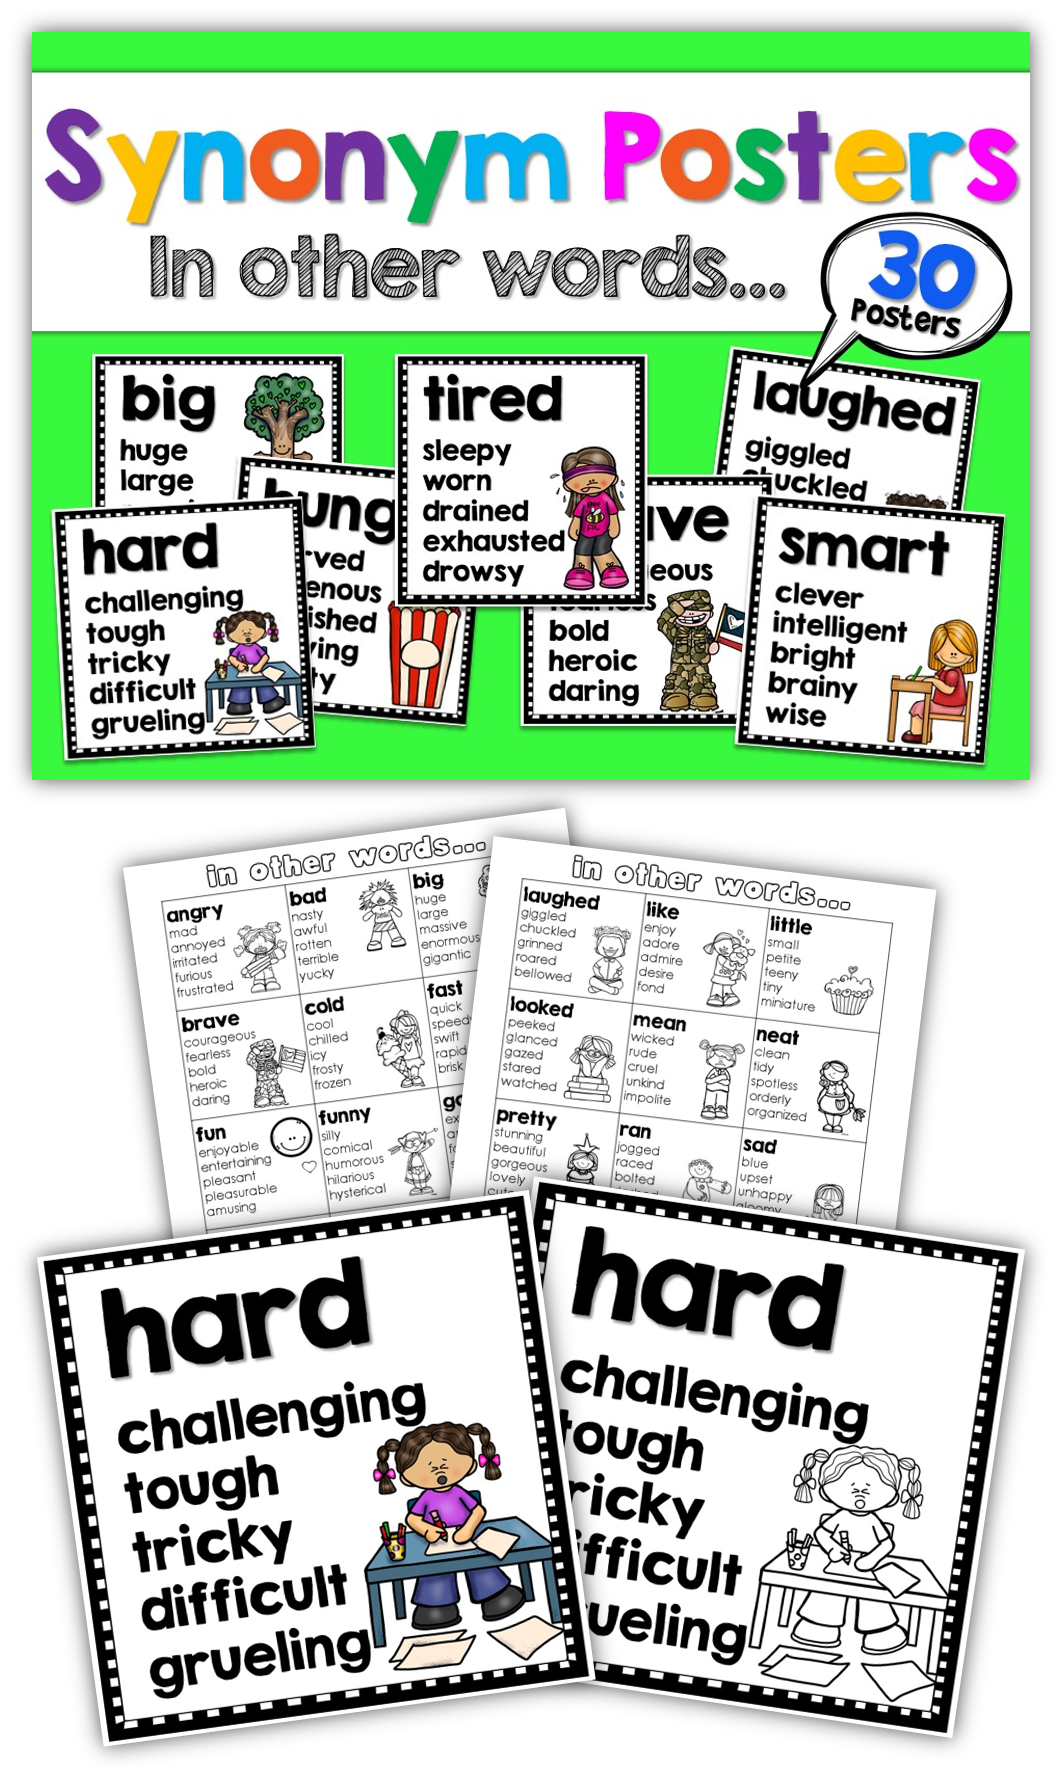 Grammar clipart language literacy. Synonym posters usa and